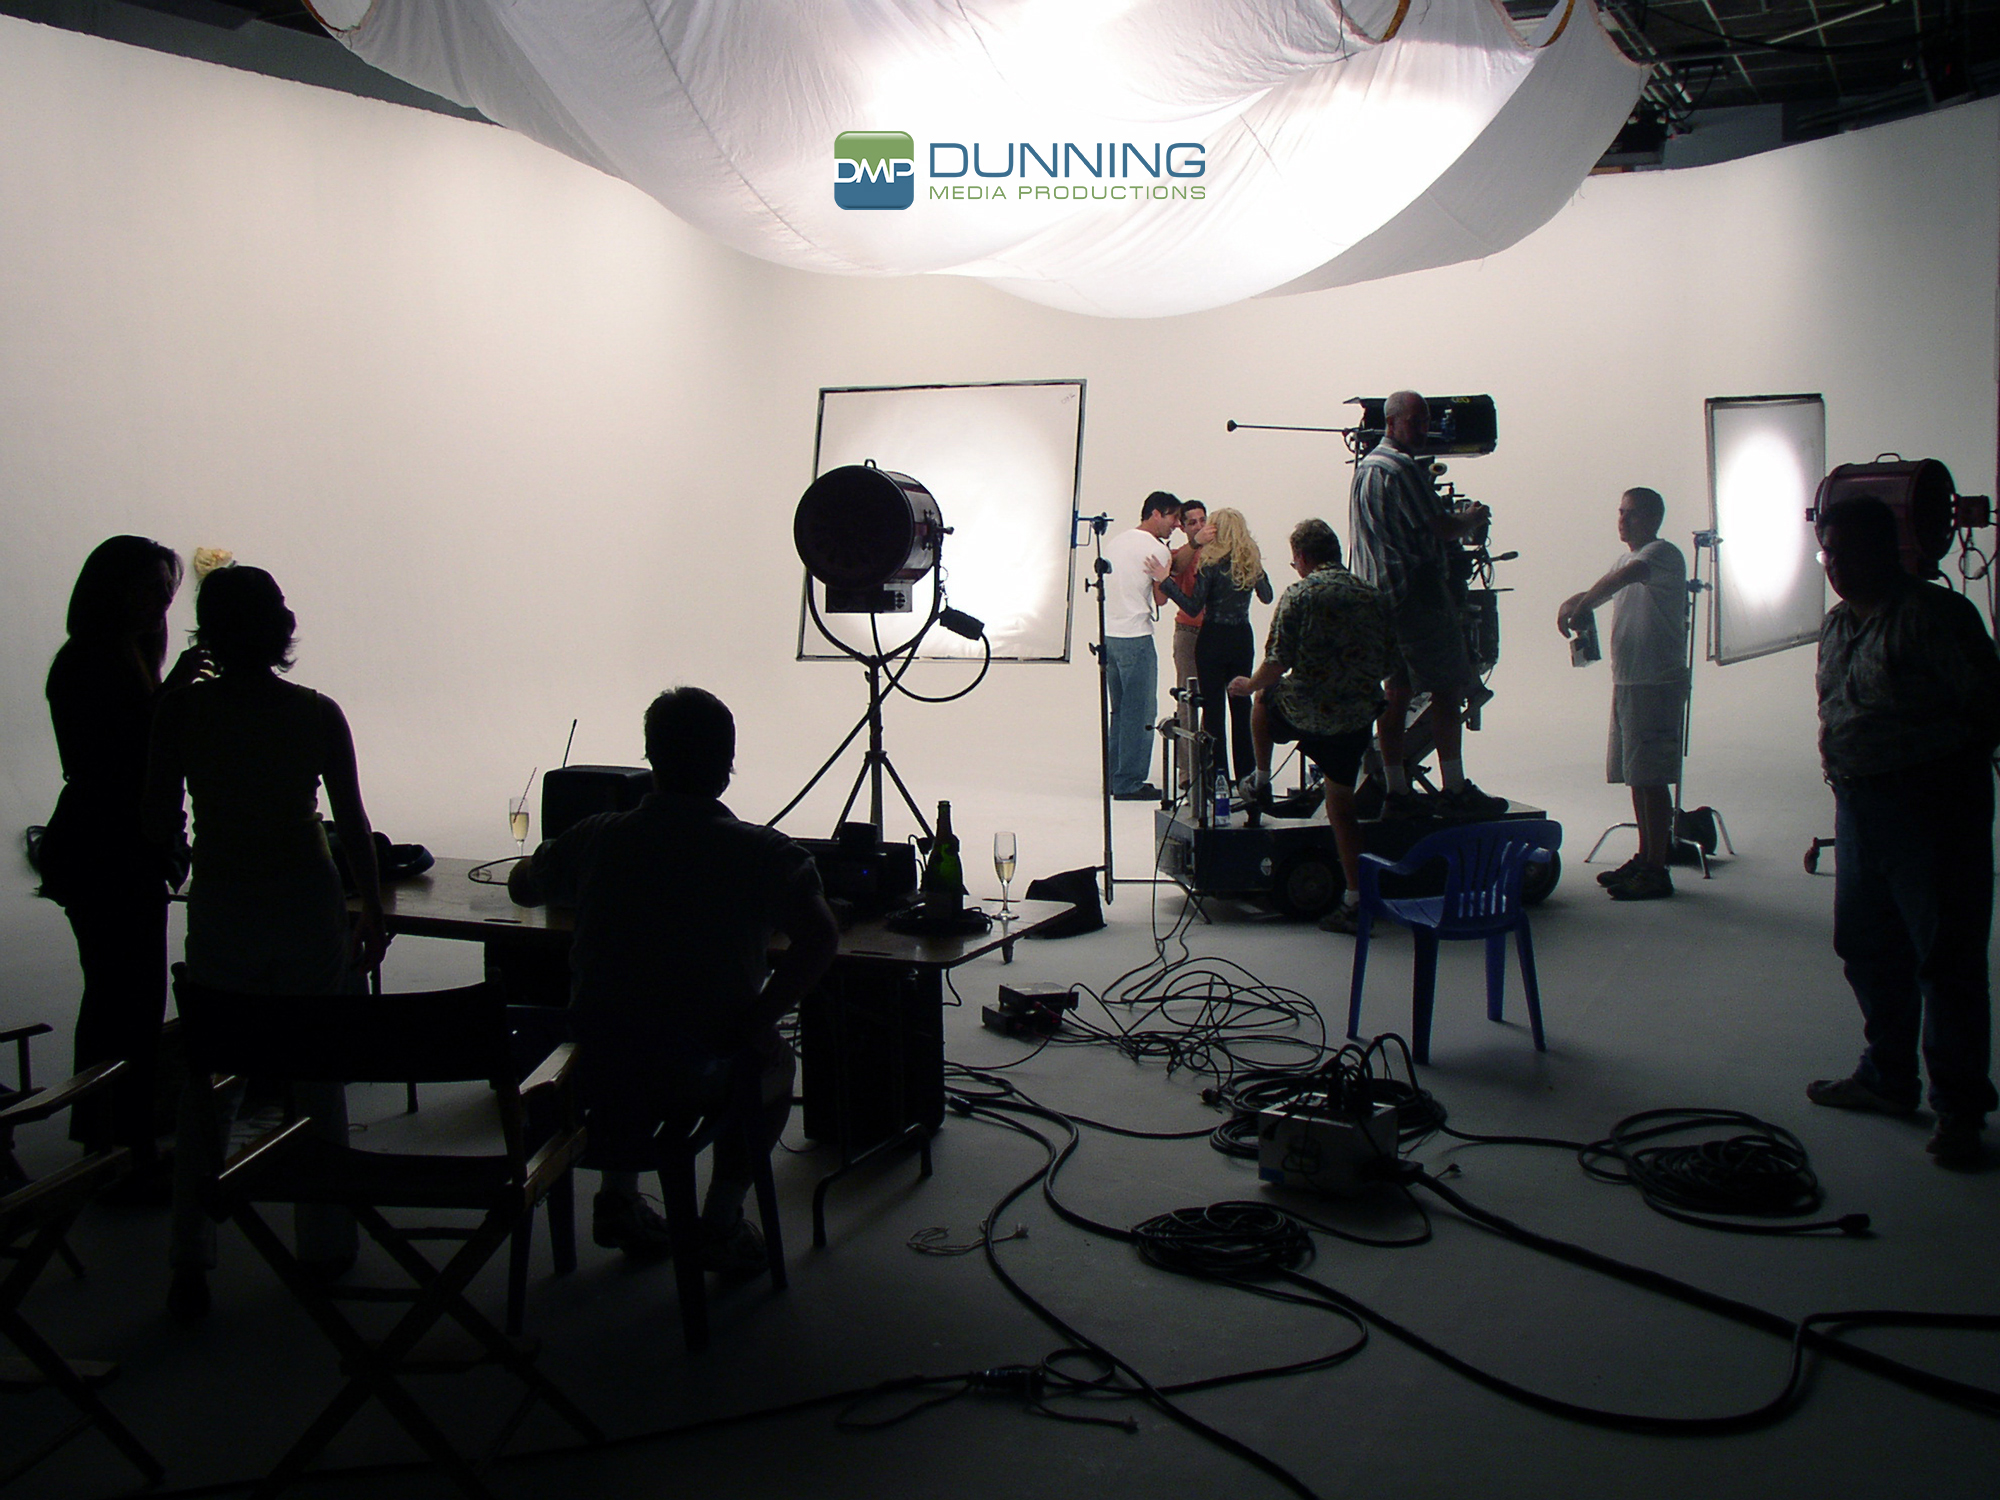 Dunning Media Productions